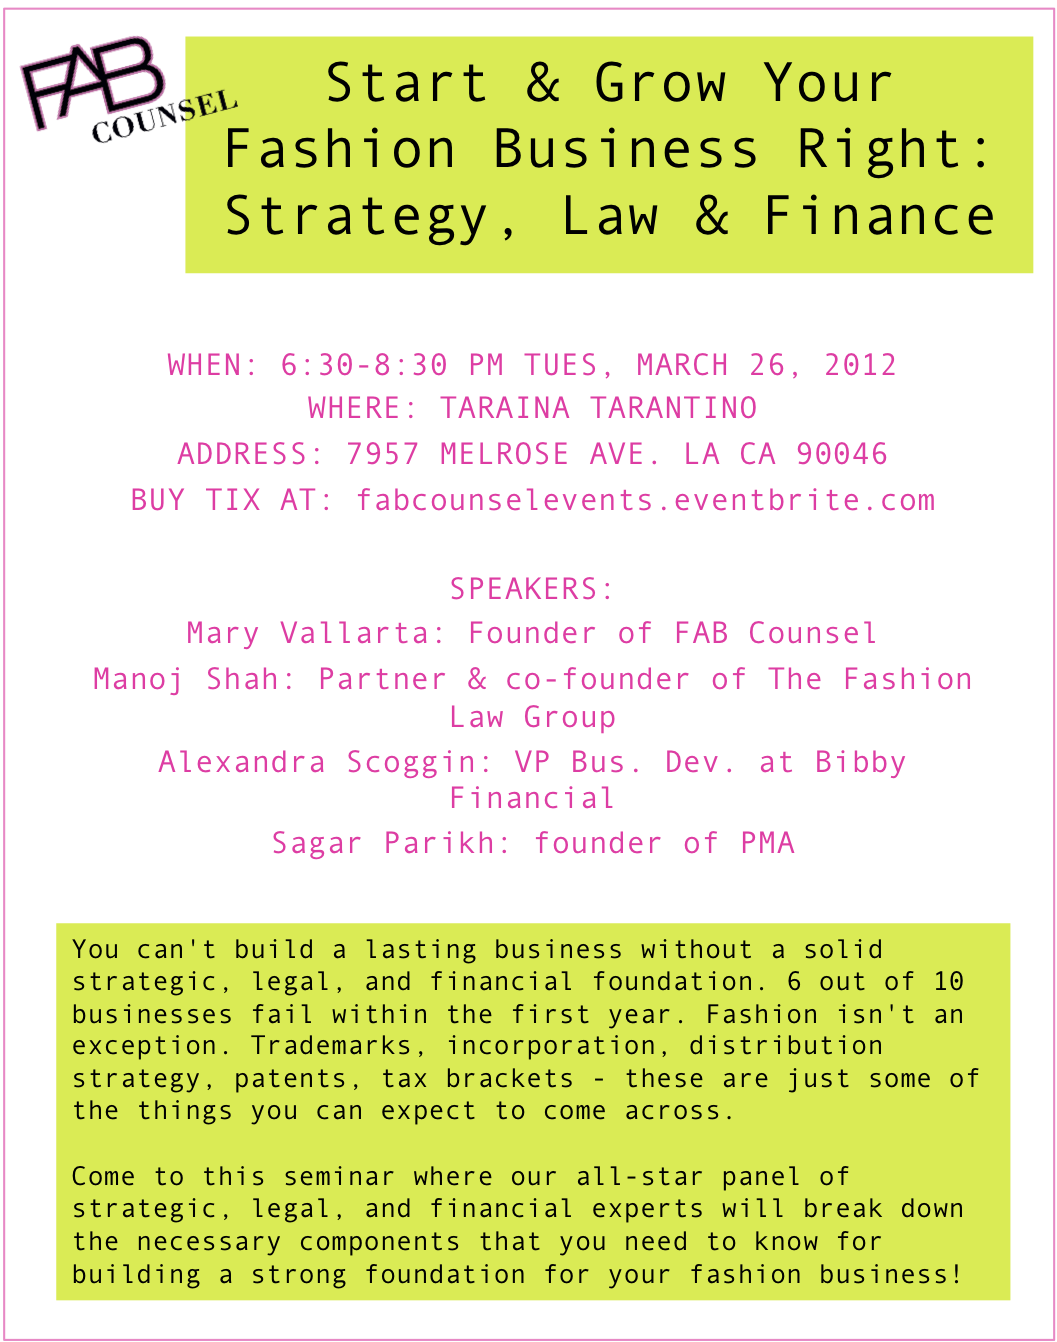 Start & Grow Your Fashion Business Right: Strategy, Law & Finance